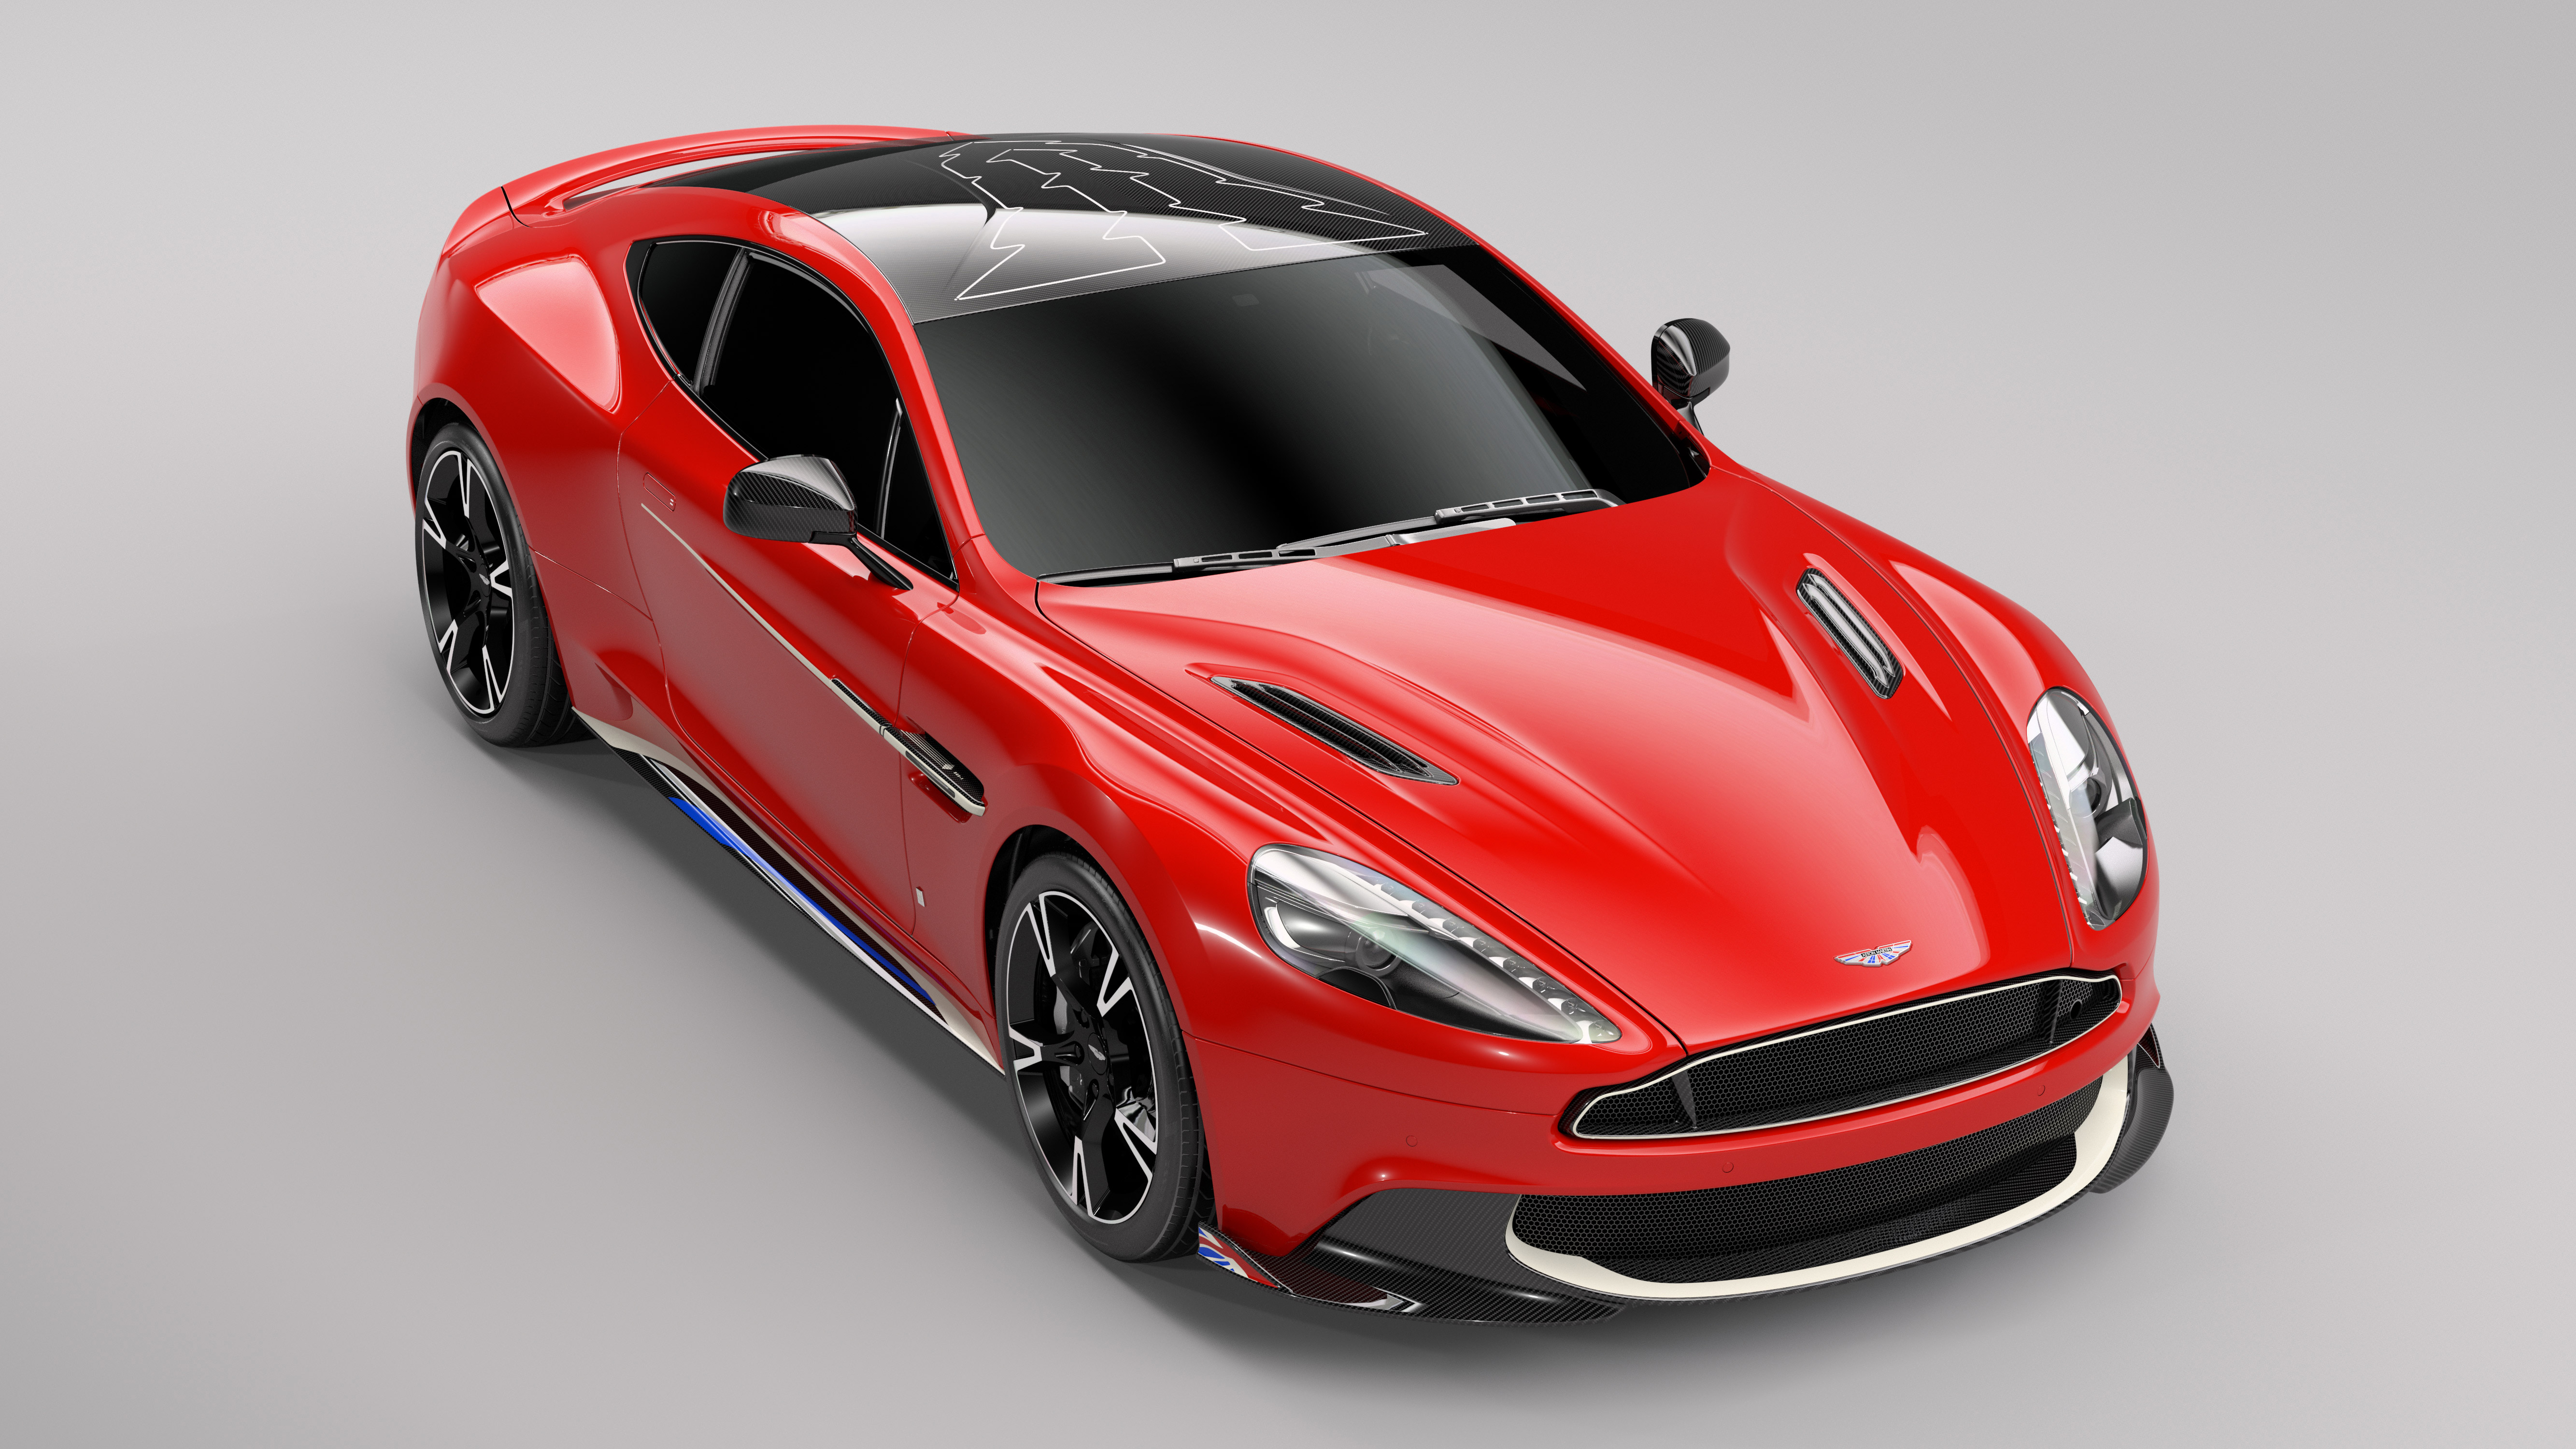 Aston Martin Vanquish S Red Arrows Edition Hd Cars 4k Wallpapers Images Backgrounds Photos And Pictures